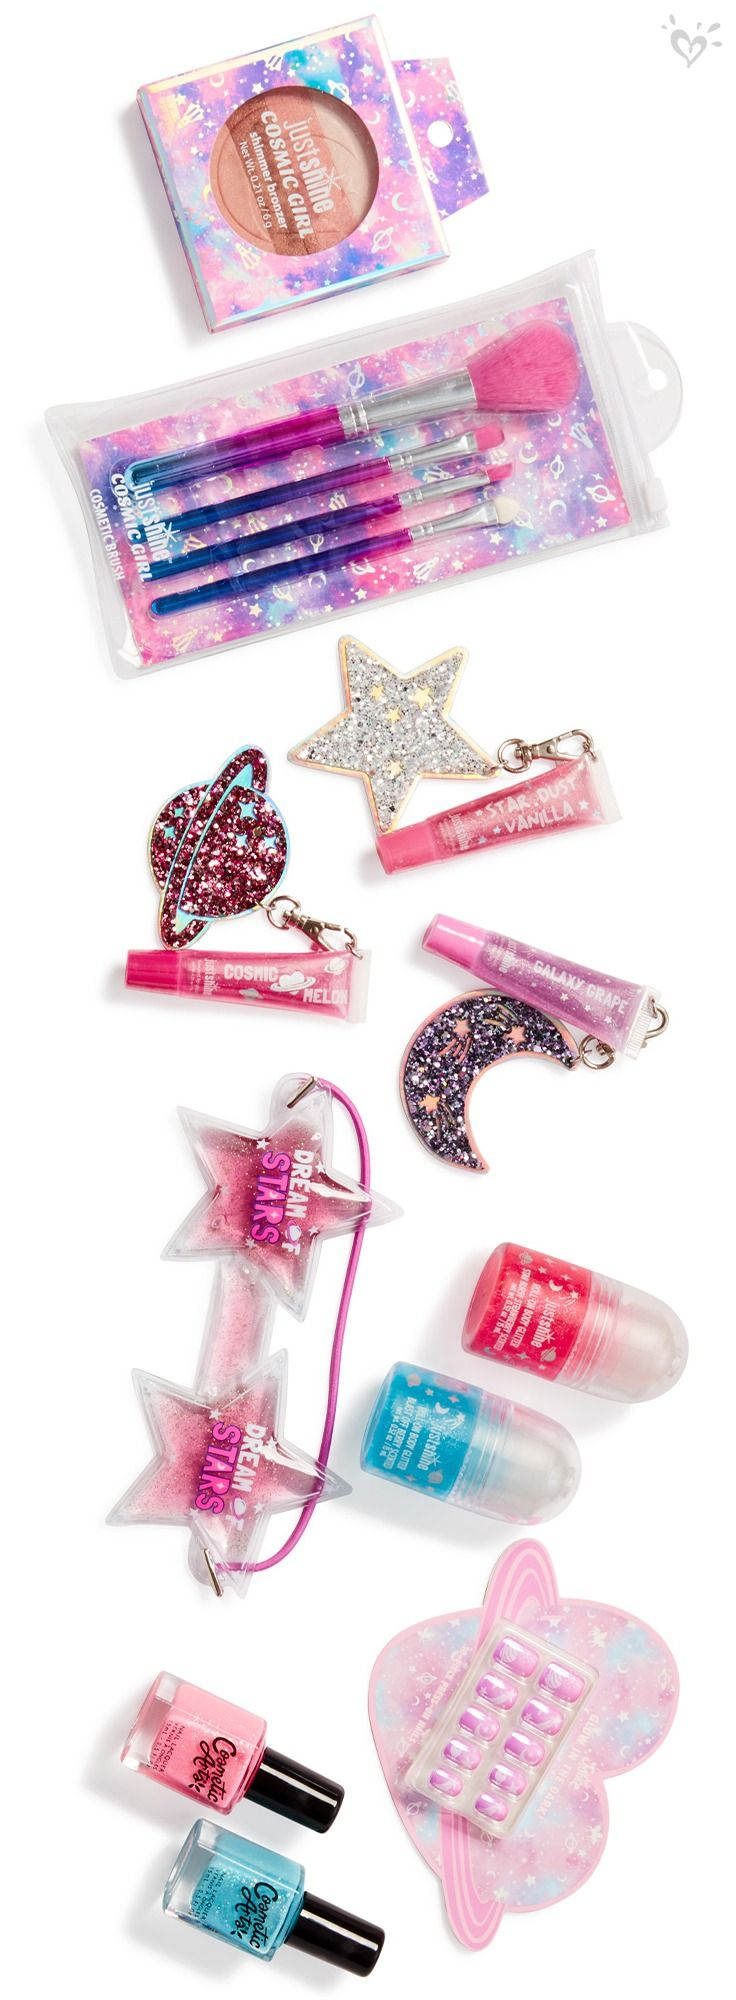 Sparkly, shimmery beauty must-haves she'll love to the moon and back!